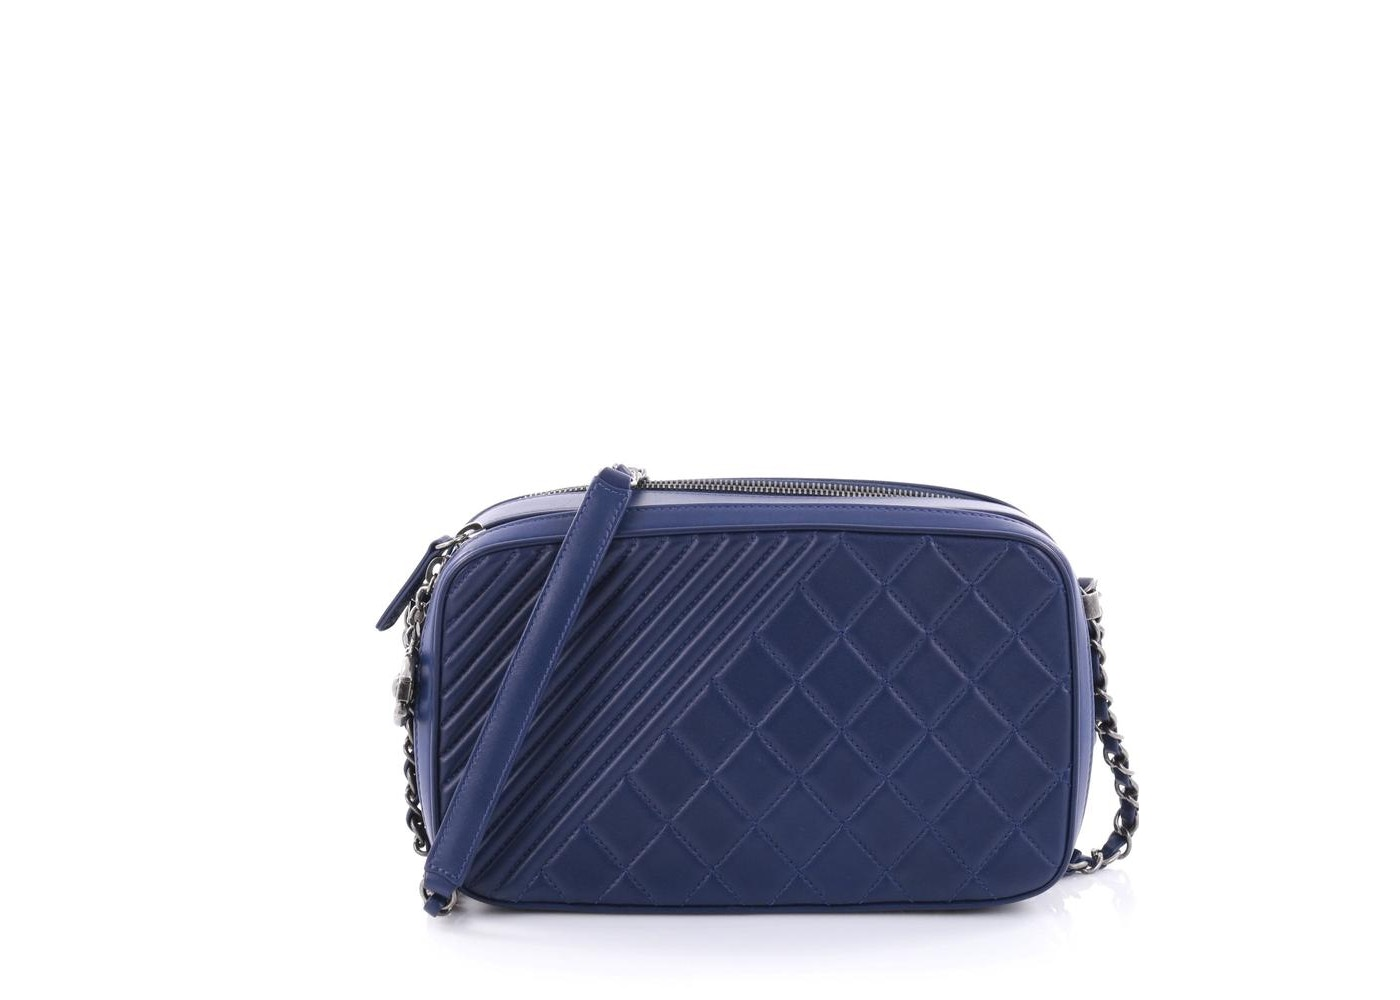 088f822d87c1ad Chanel Coco Boy Camera Bag Quilted Diagonal/Diamond Large Blue. Quilted  Diagonal/Diamond Large Blue